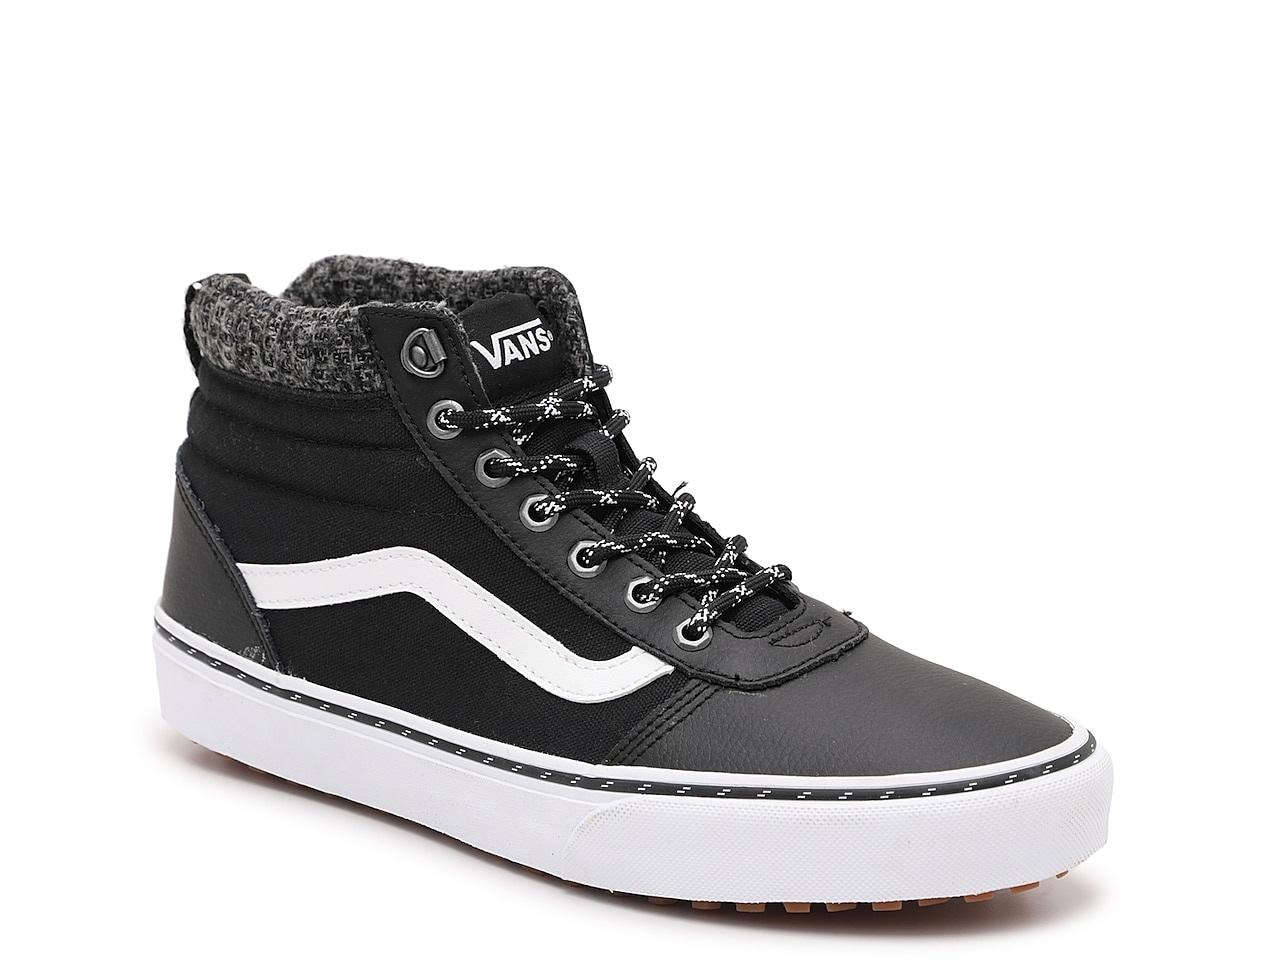 Ward Hi MTE High-Top Sneaker - Men's